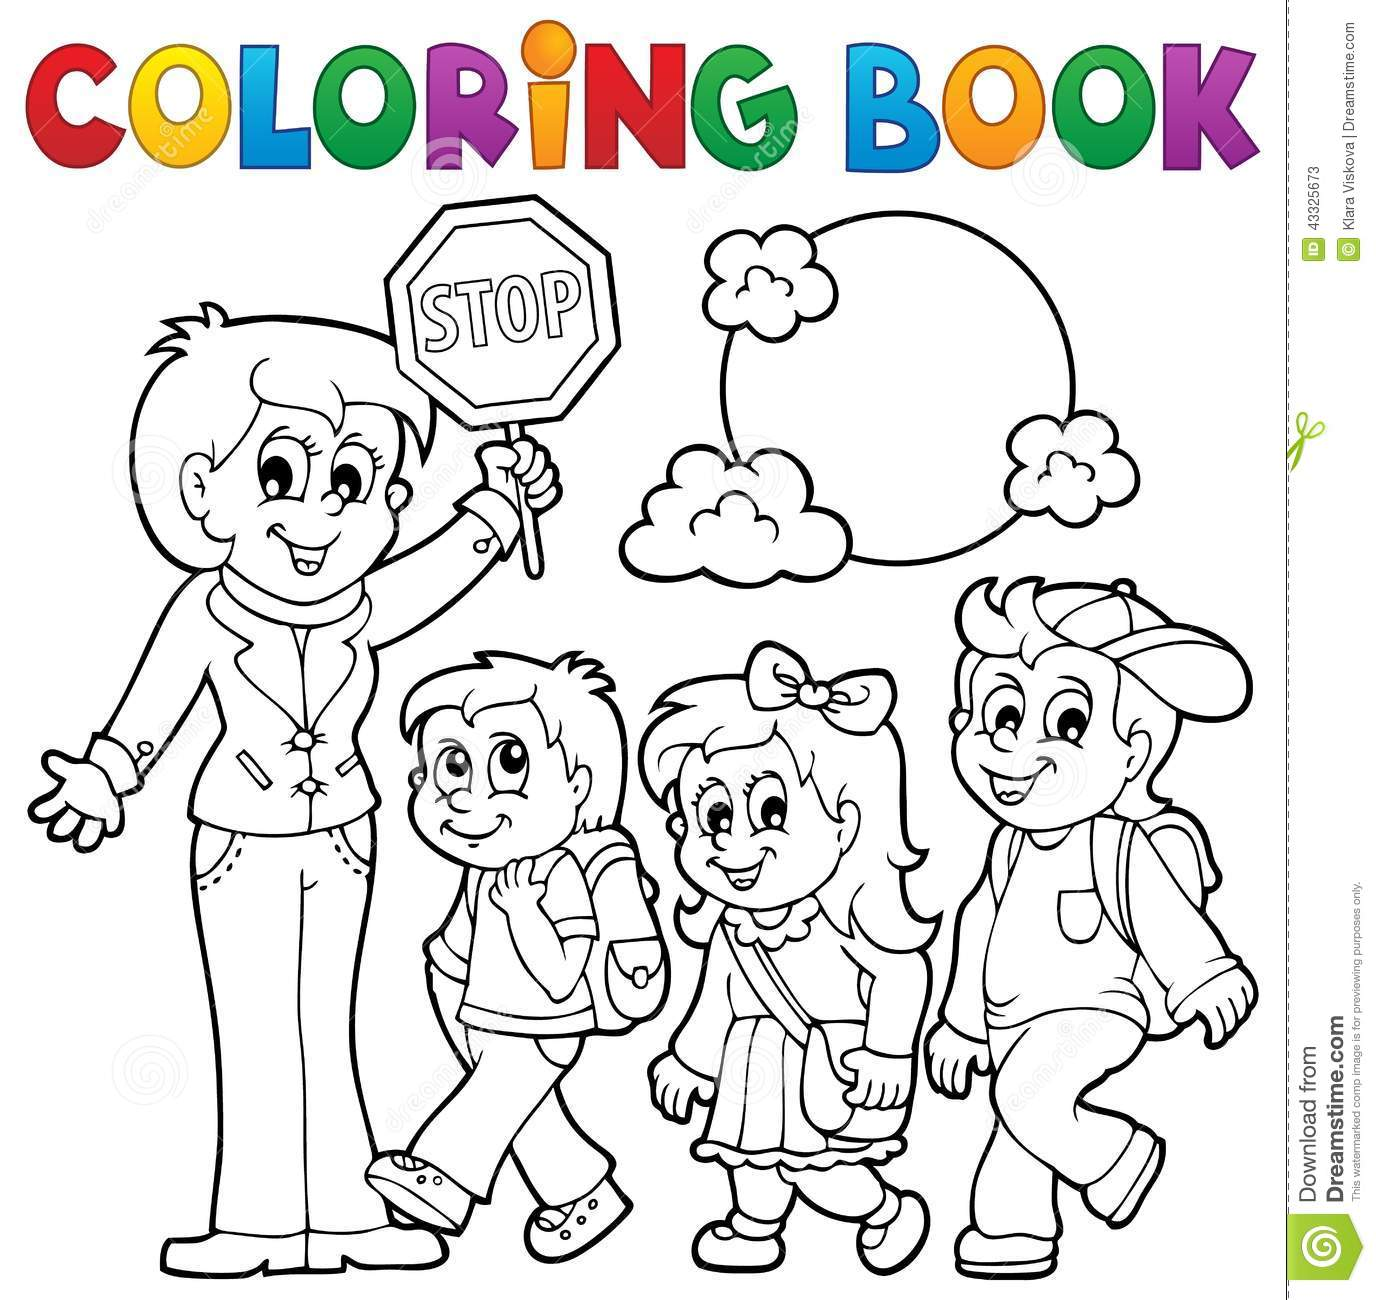 Coloring book school - Book Coloring Eps10 Illustration Kids School